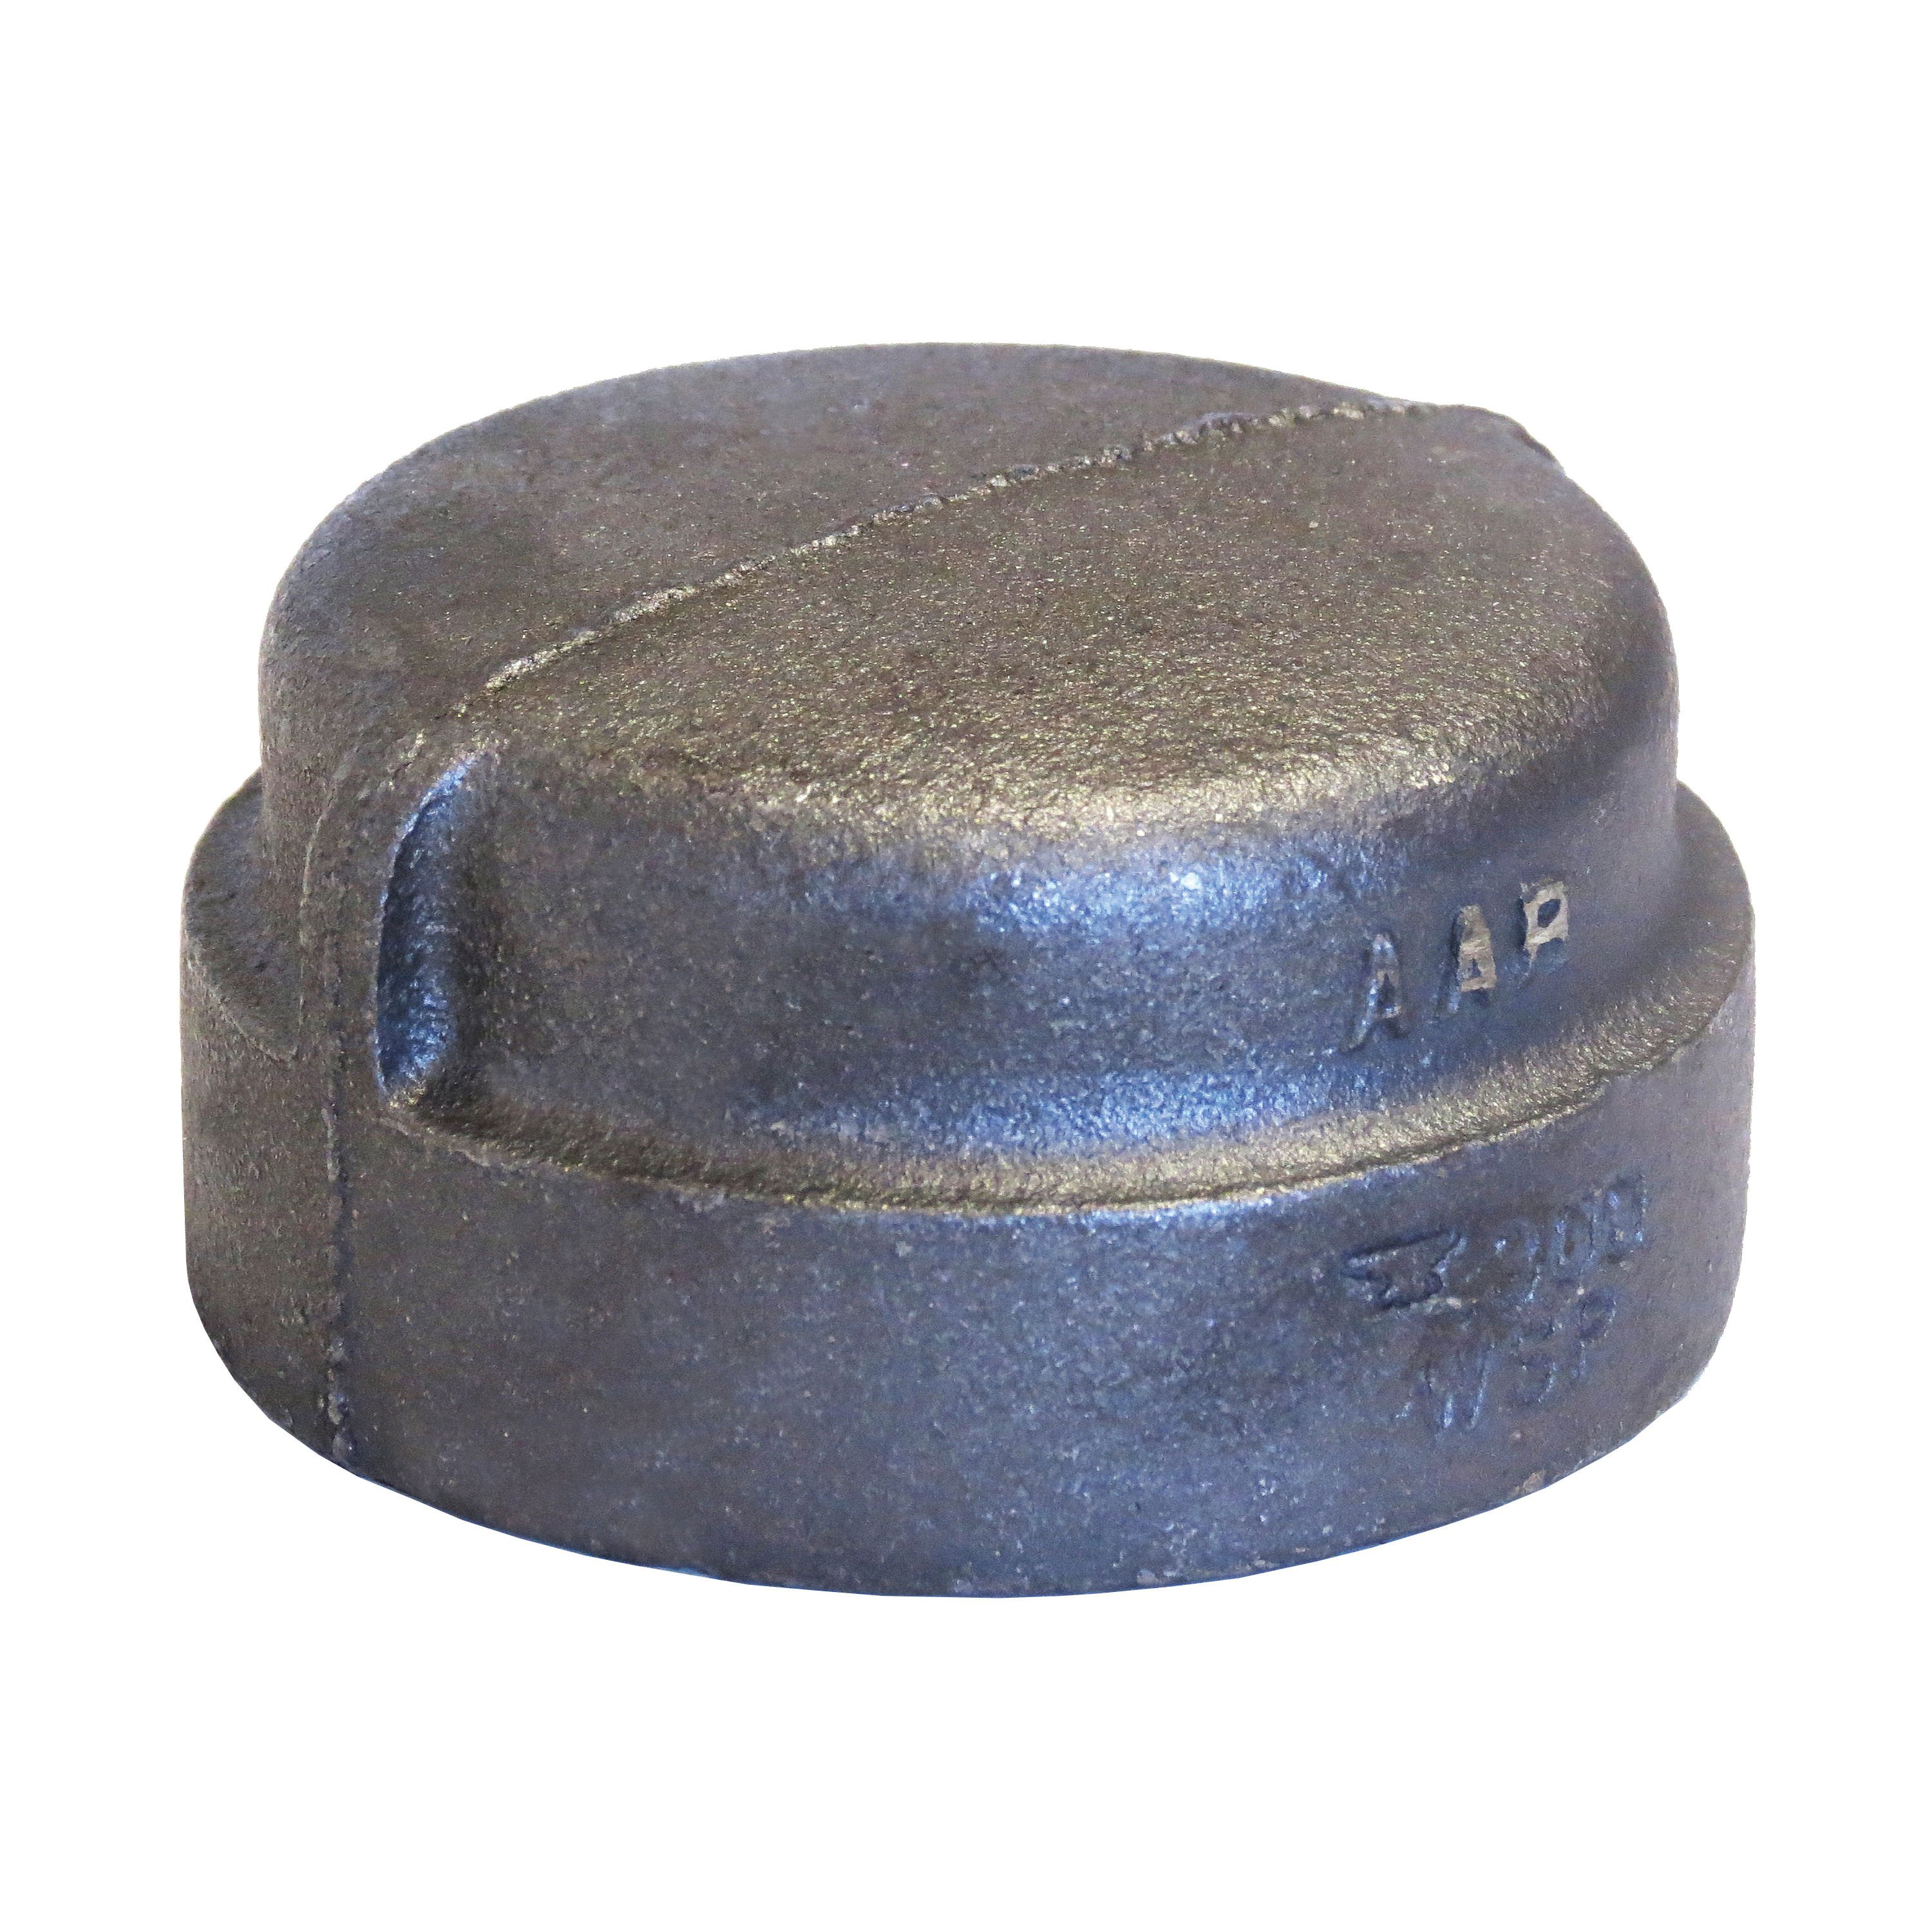 Anvil® 0318901303 FIG 1163 Pipe Cap, 1/2 in Nominal, FNPT End Style, 300 lb, Malleable Iron, Black Oxide, Domestic